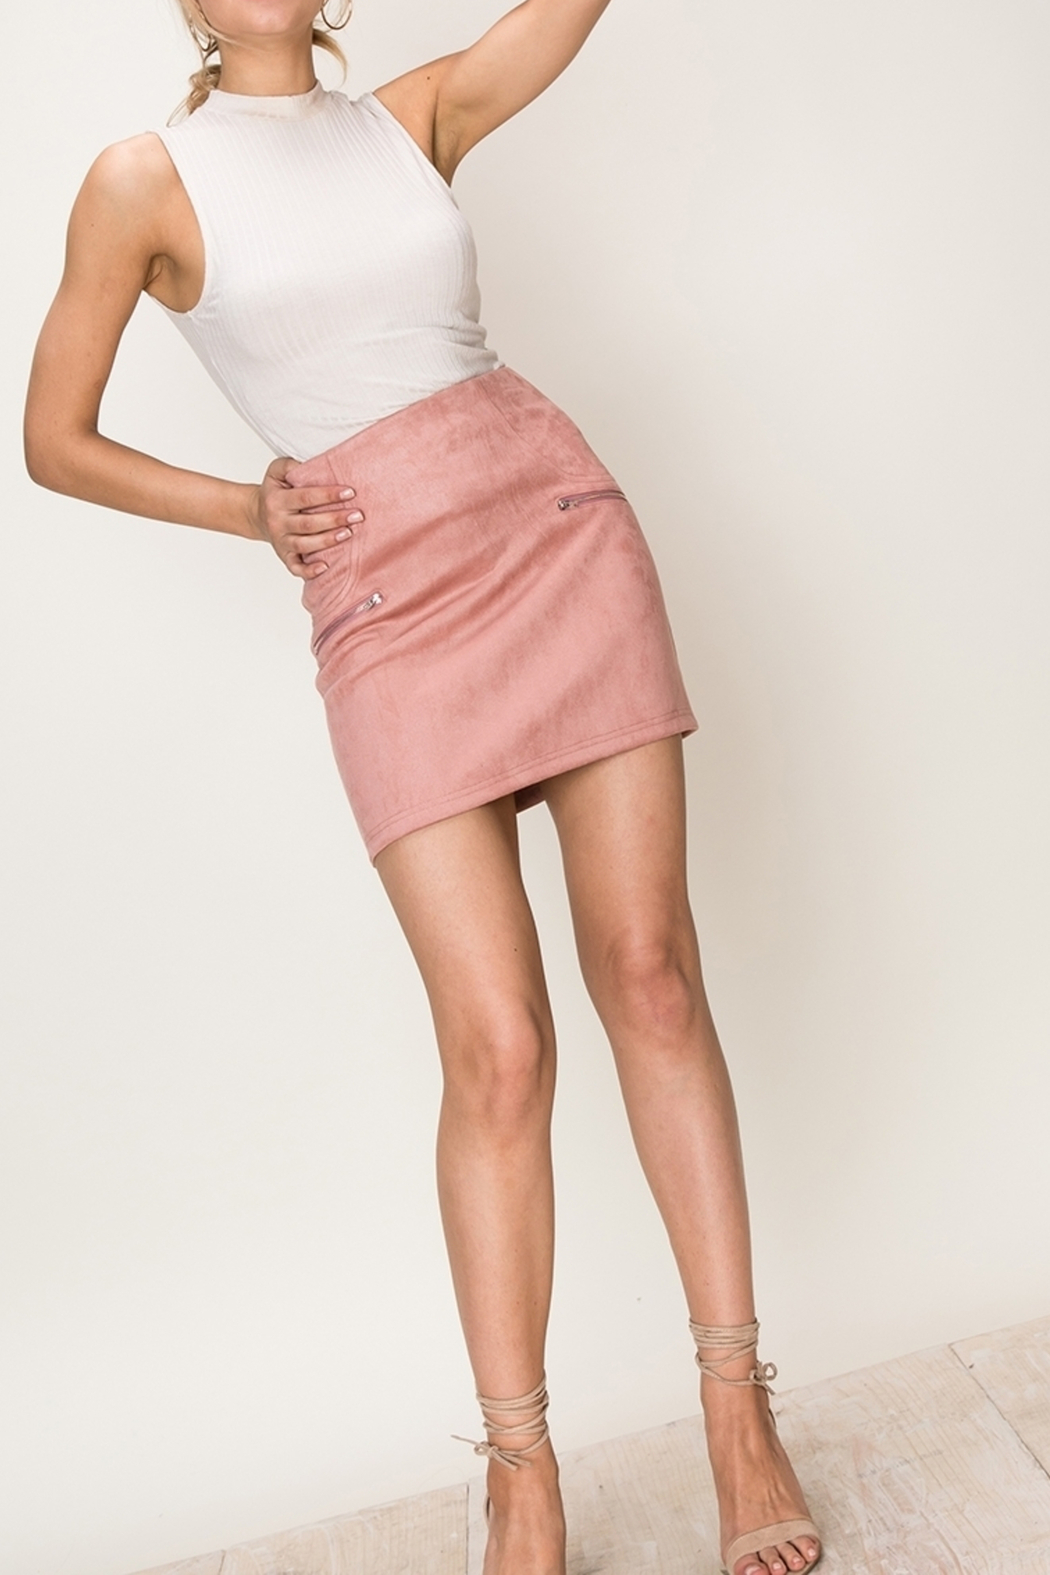 763af5634532 HYFVE Pencil Mini Skirt from Orlando by Zingara Souls — Shoptiques